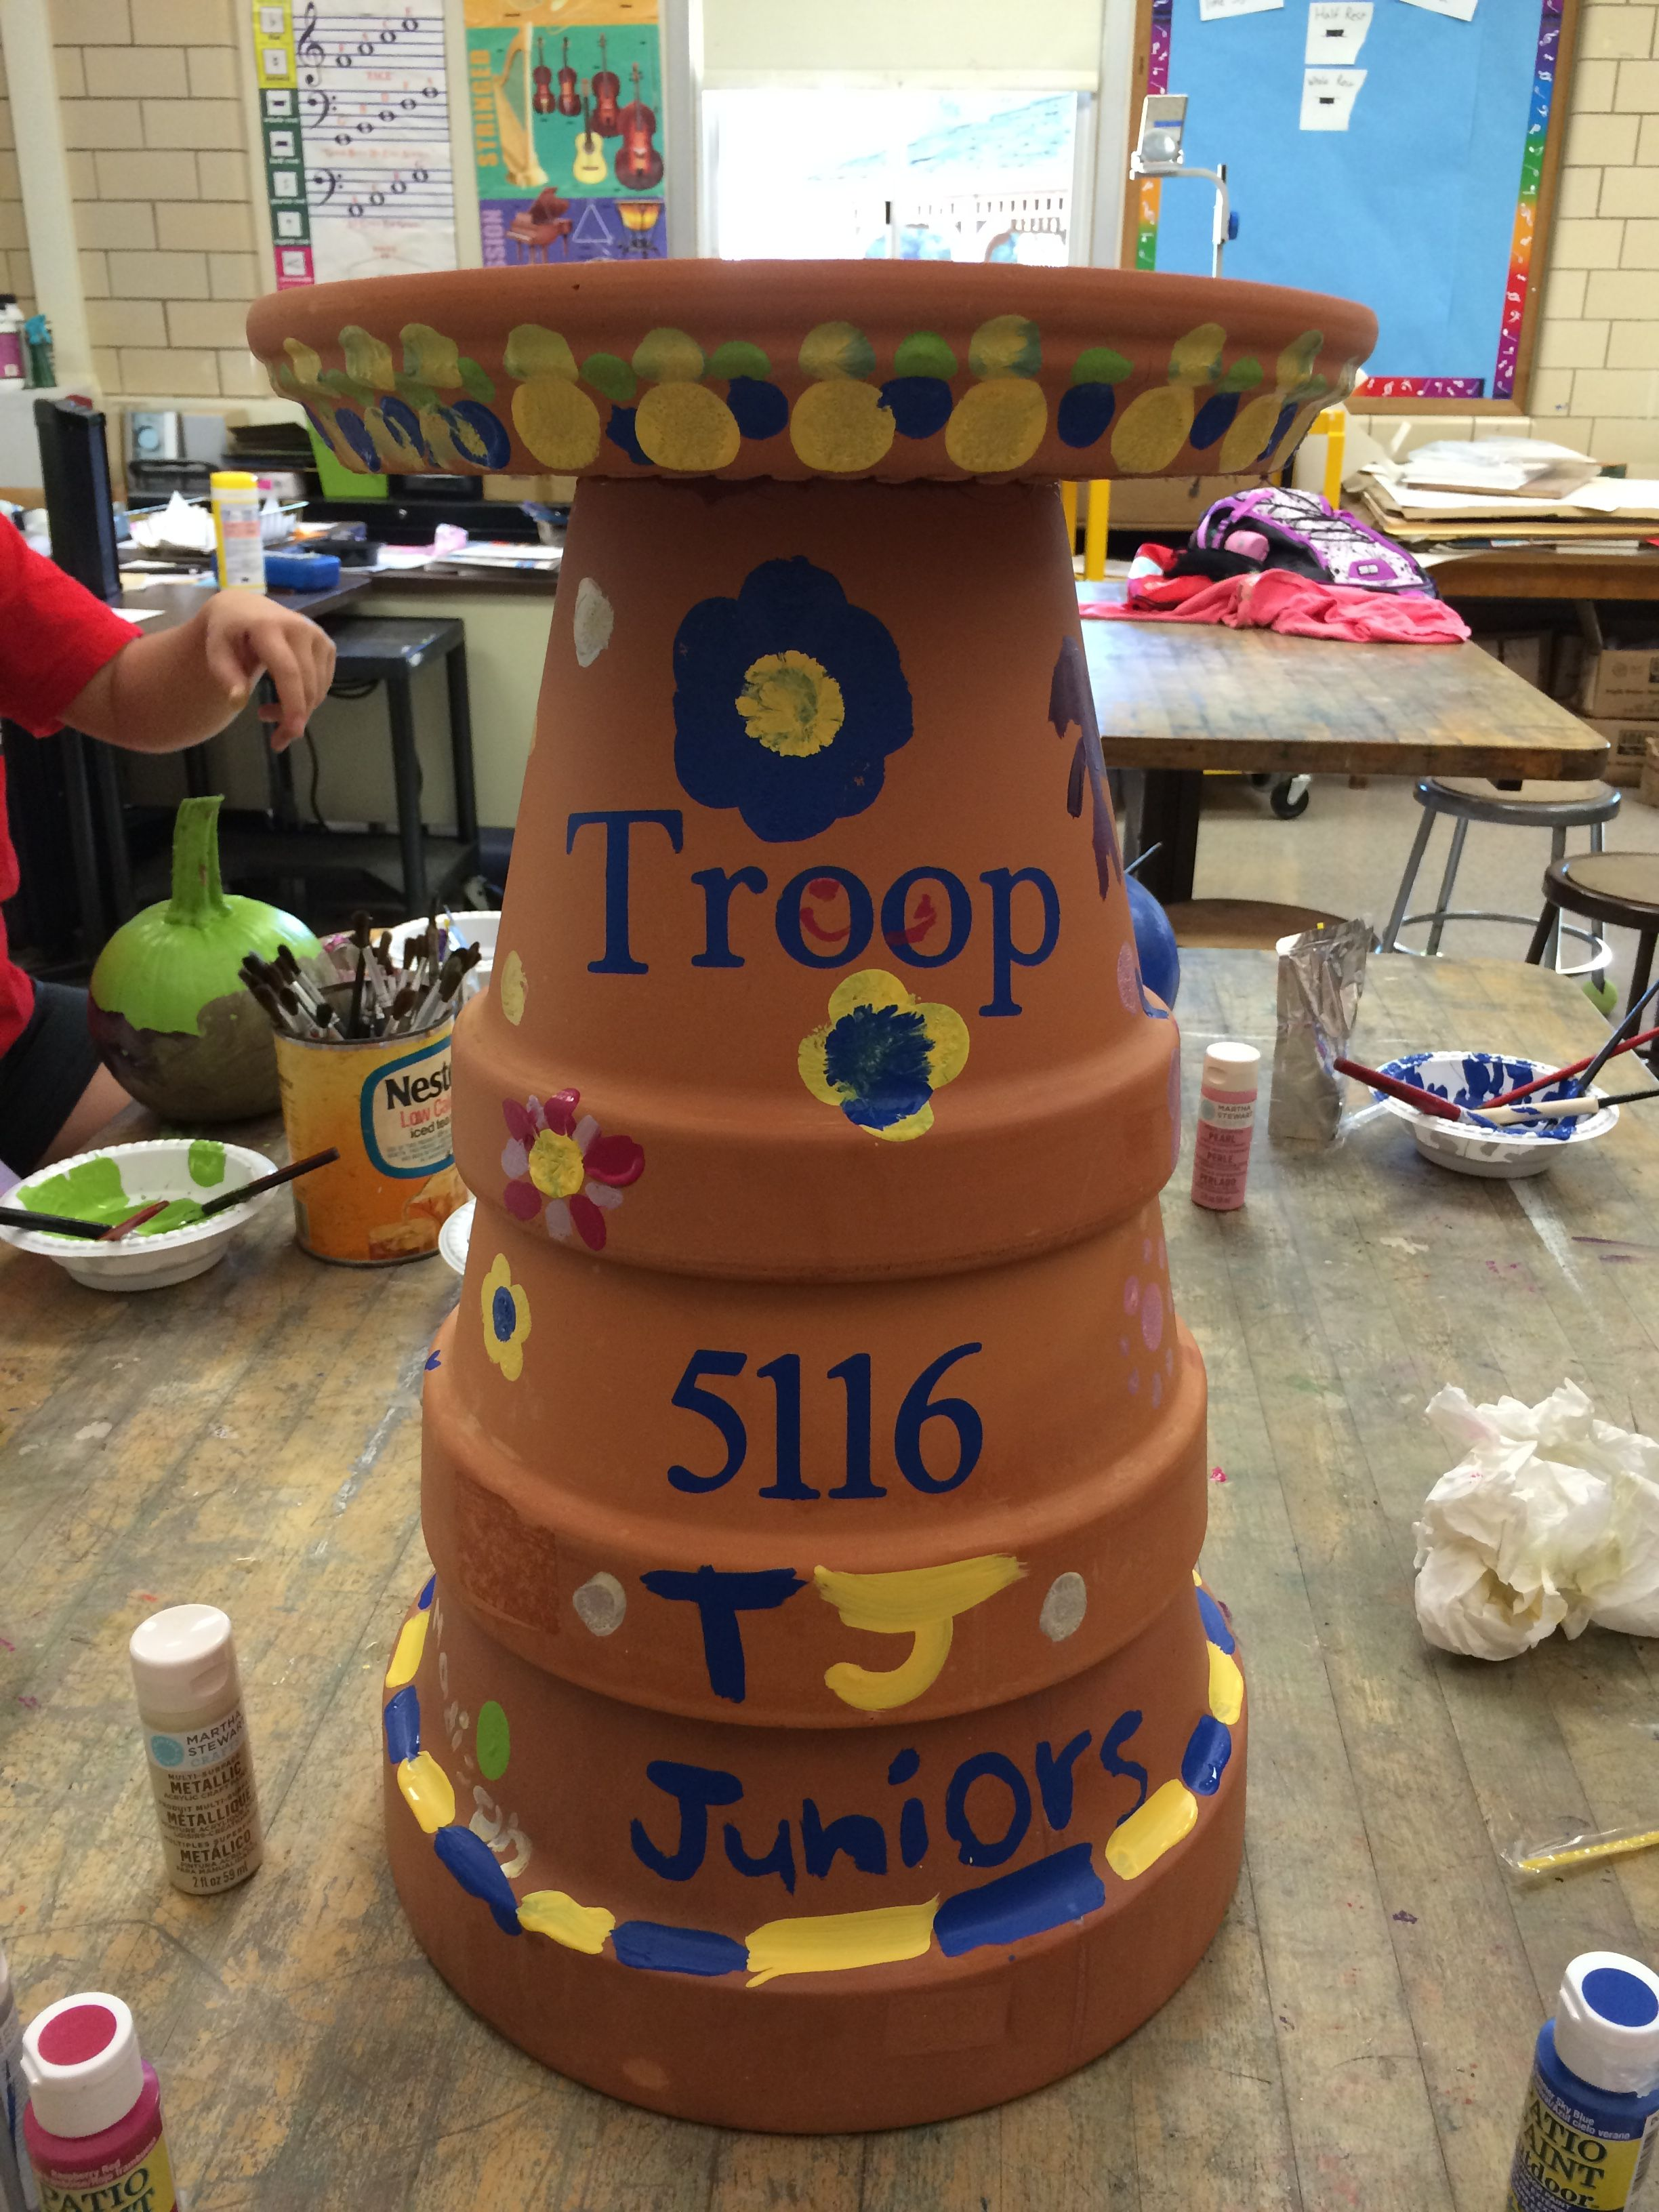 So Proud Of Our Girl Scout Troop Birdbath For The School Garden Made As Part Of The Animal